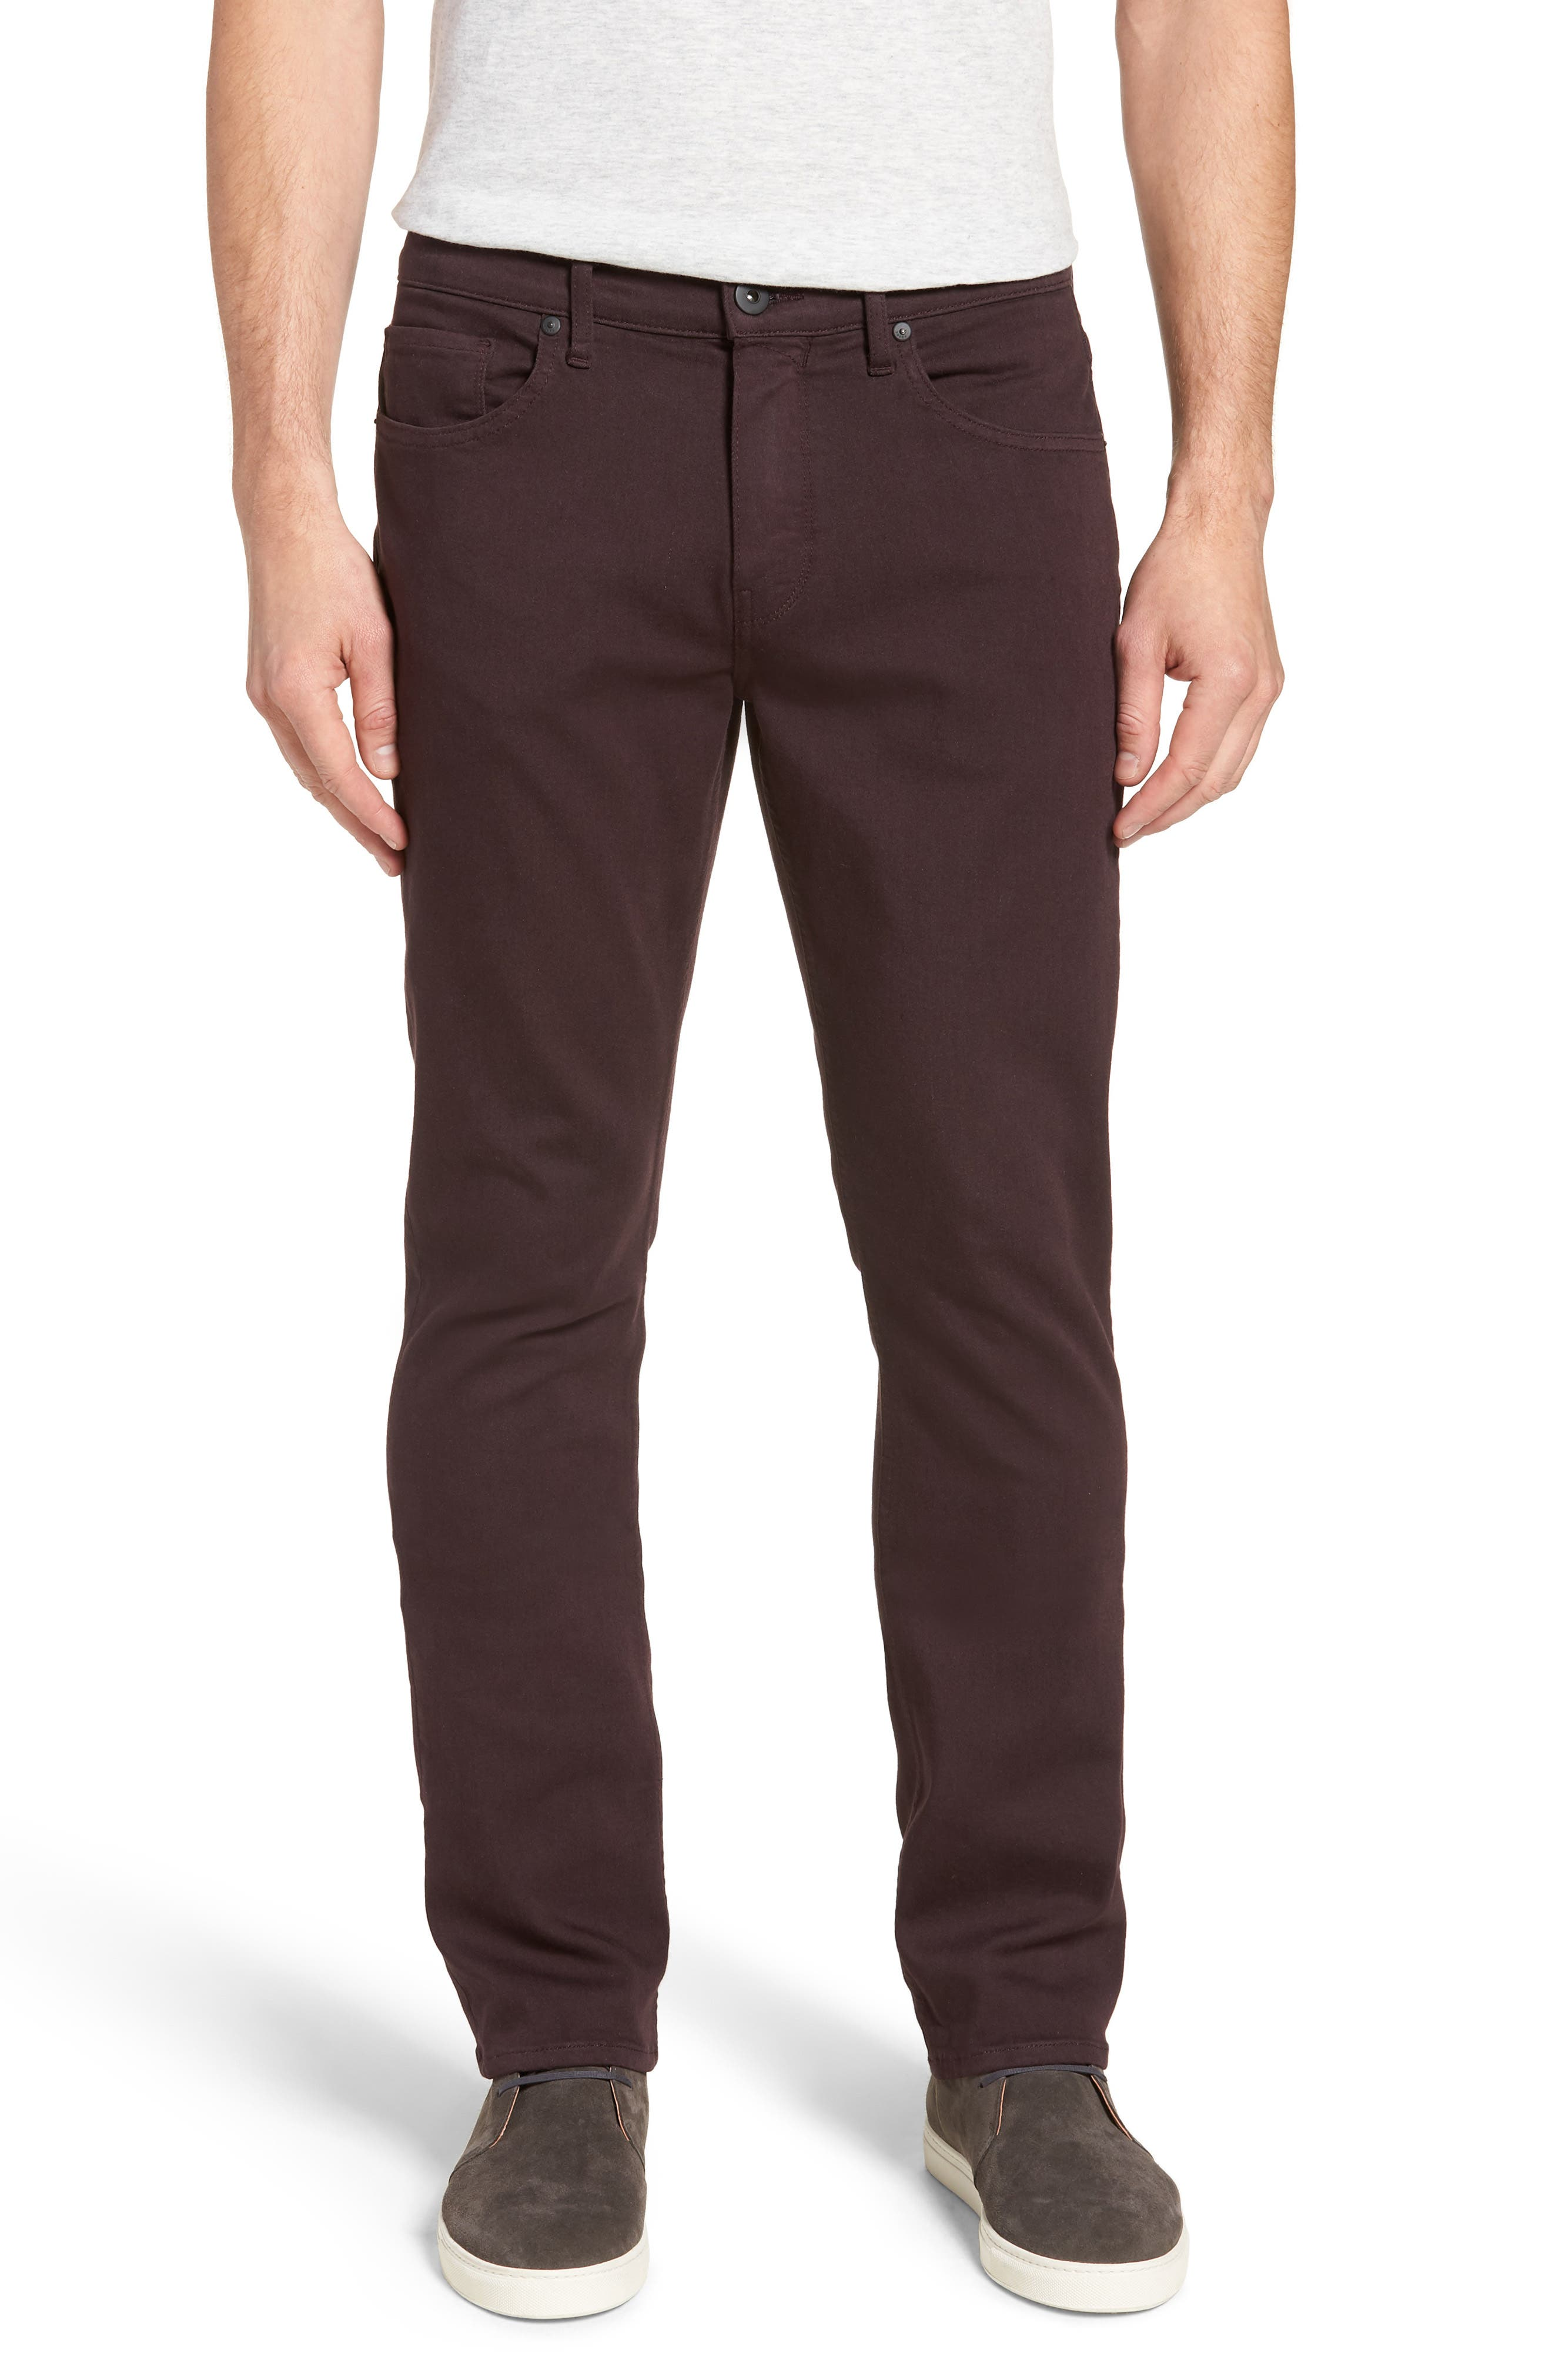 Transcend - Federal Silm Straight Fit Jeans,                         Main,                         color, DARK PORT